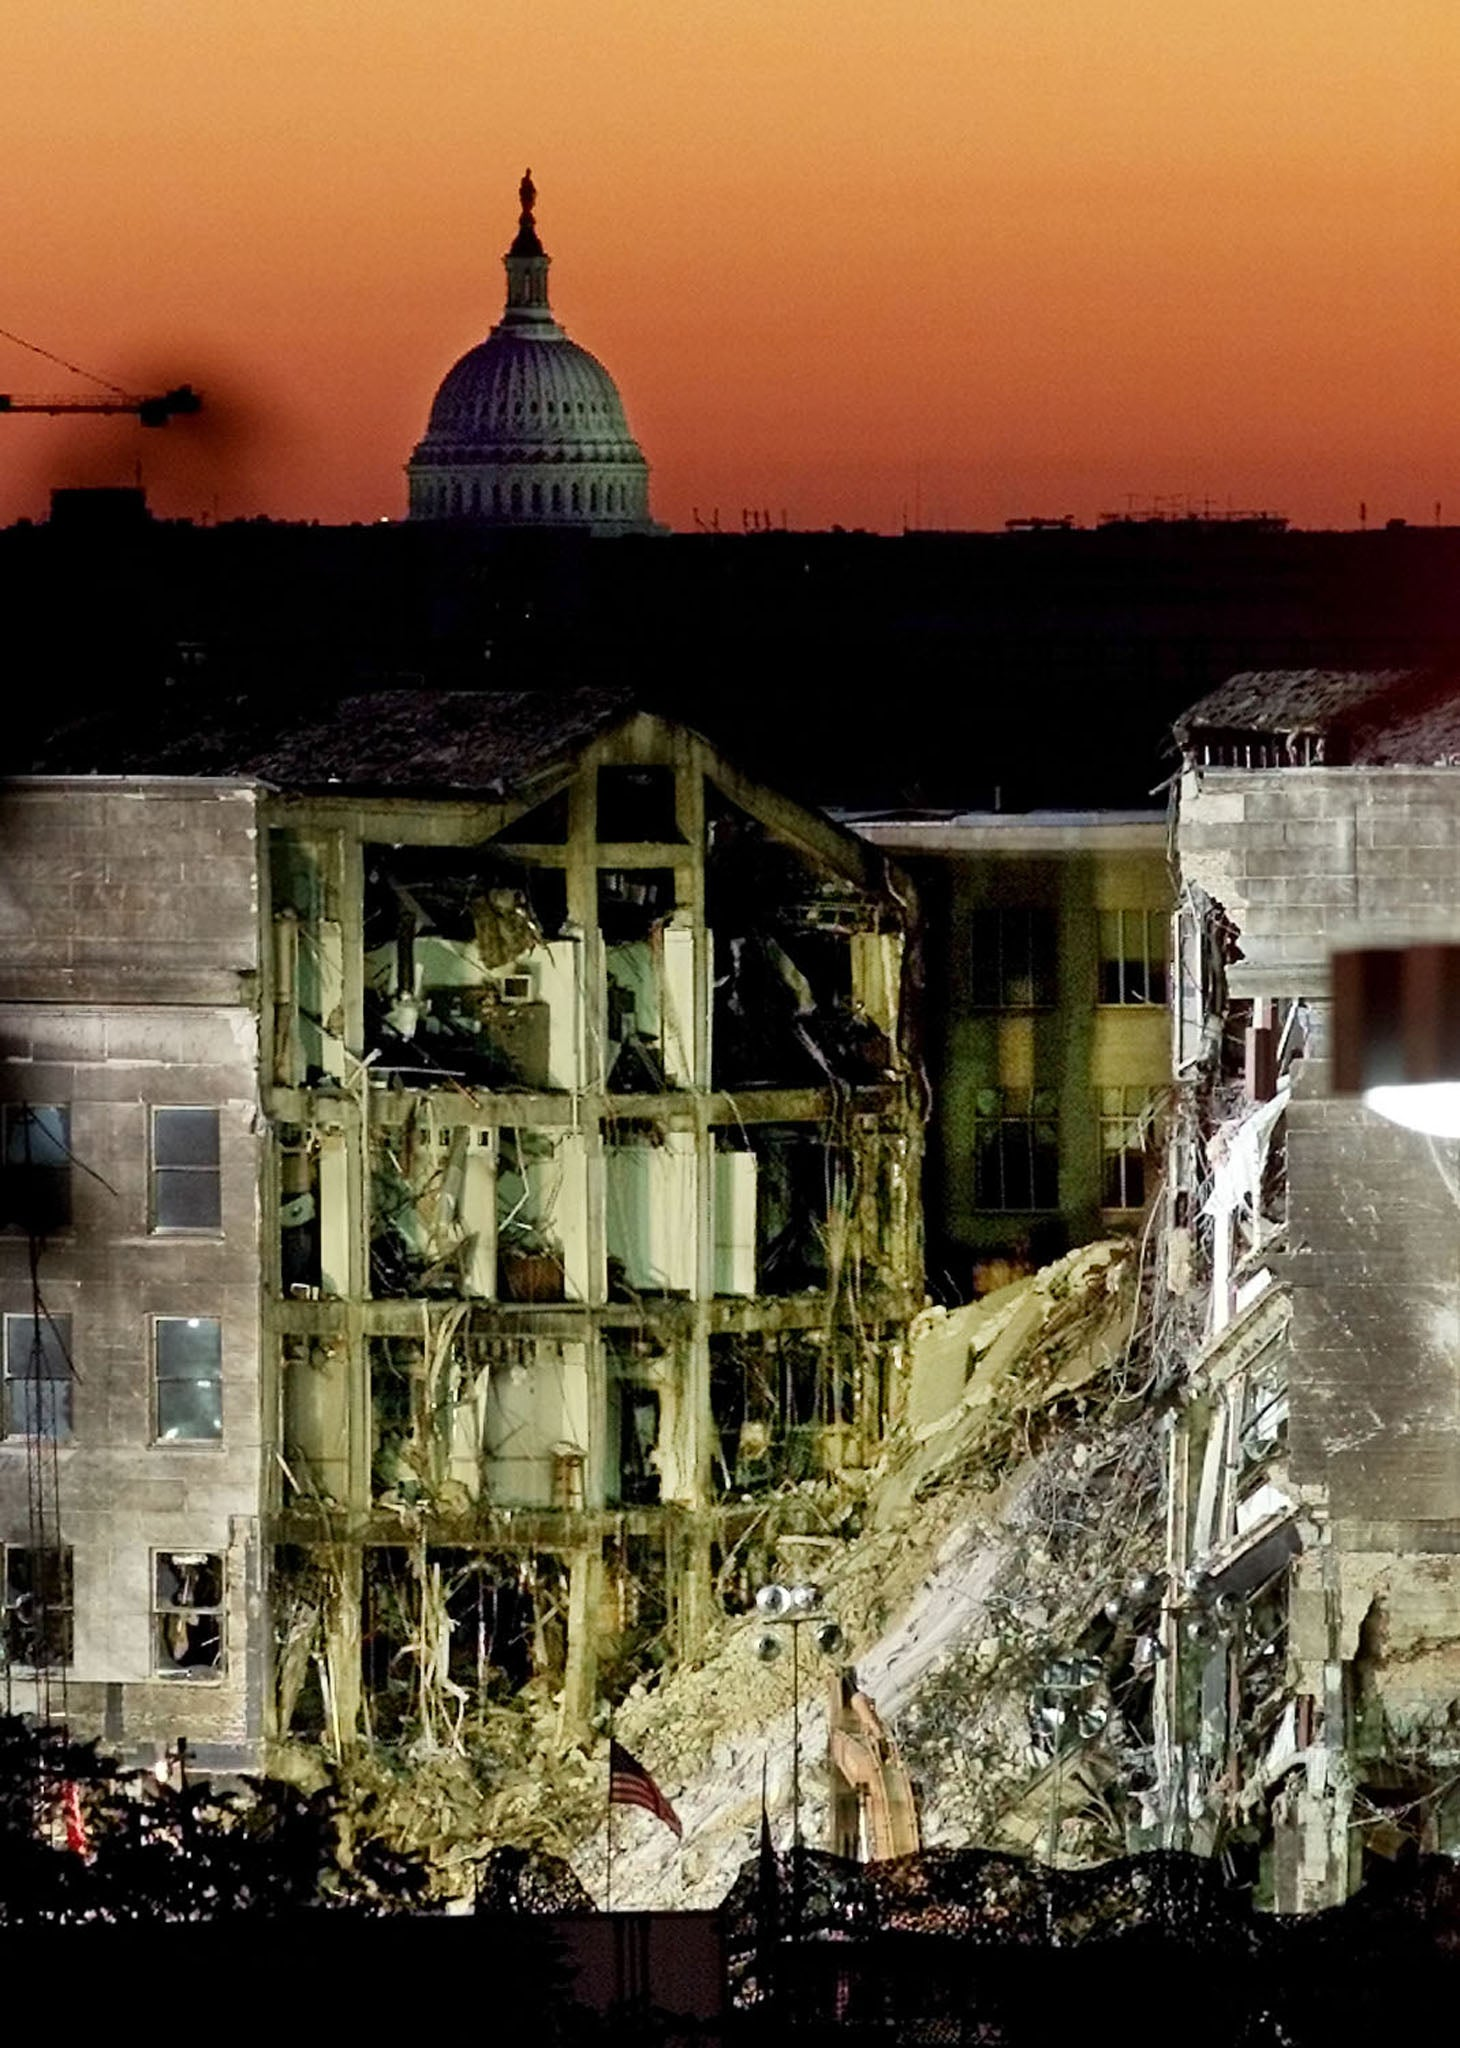 22 photos of 11 and the days after six days after the attack on the pentagon at sunrise 17 2001